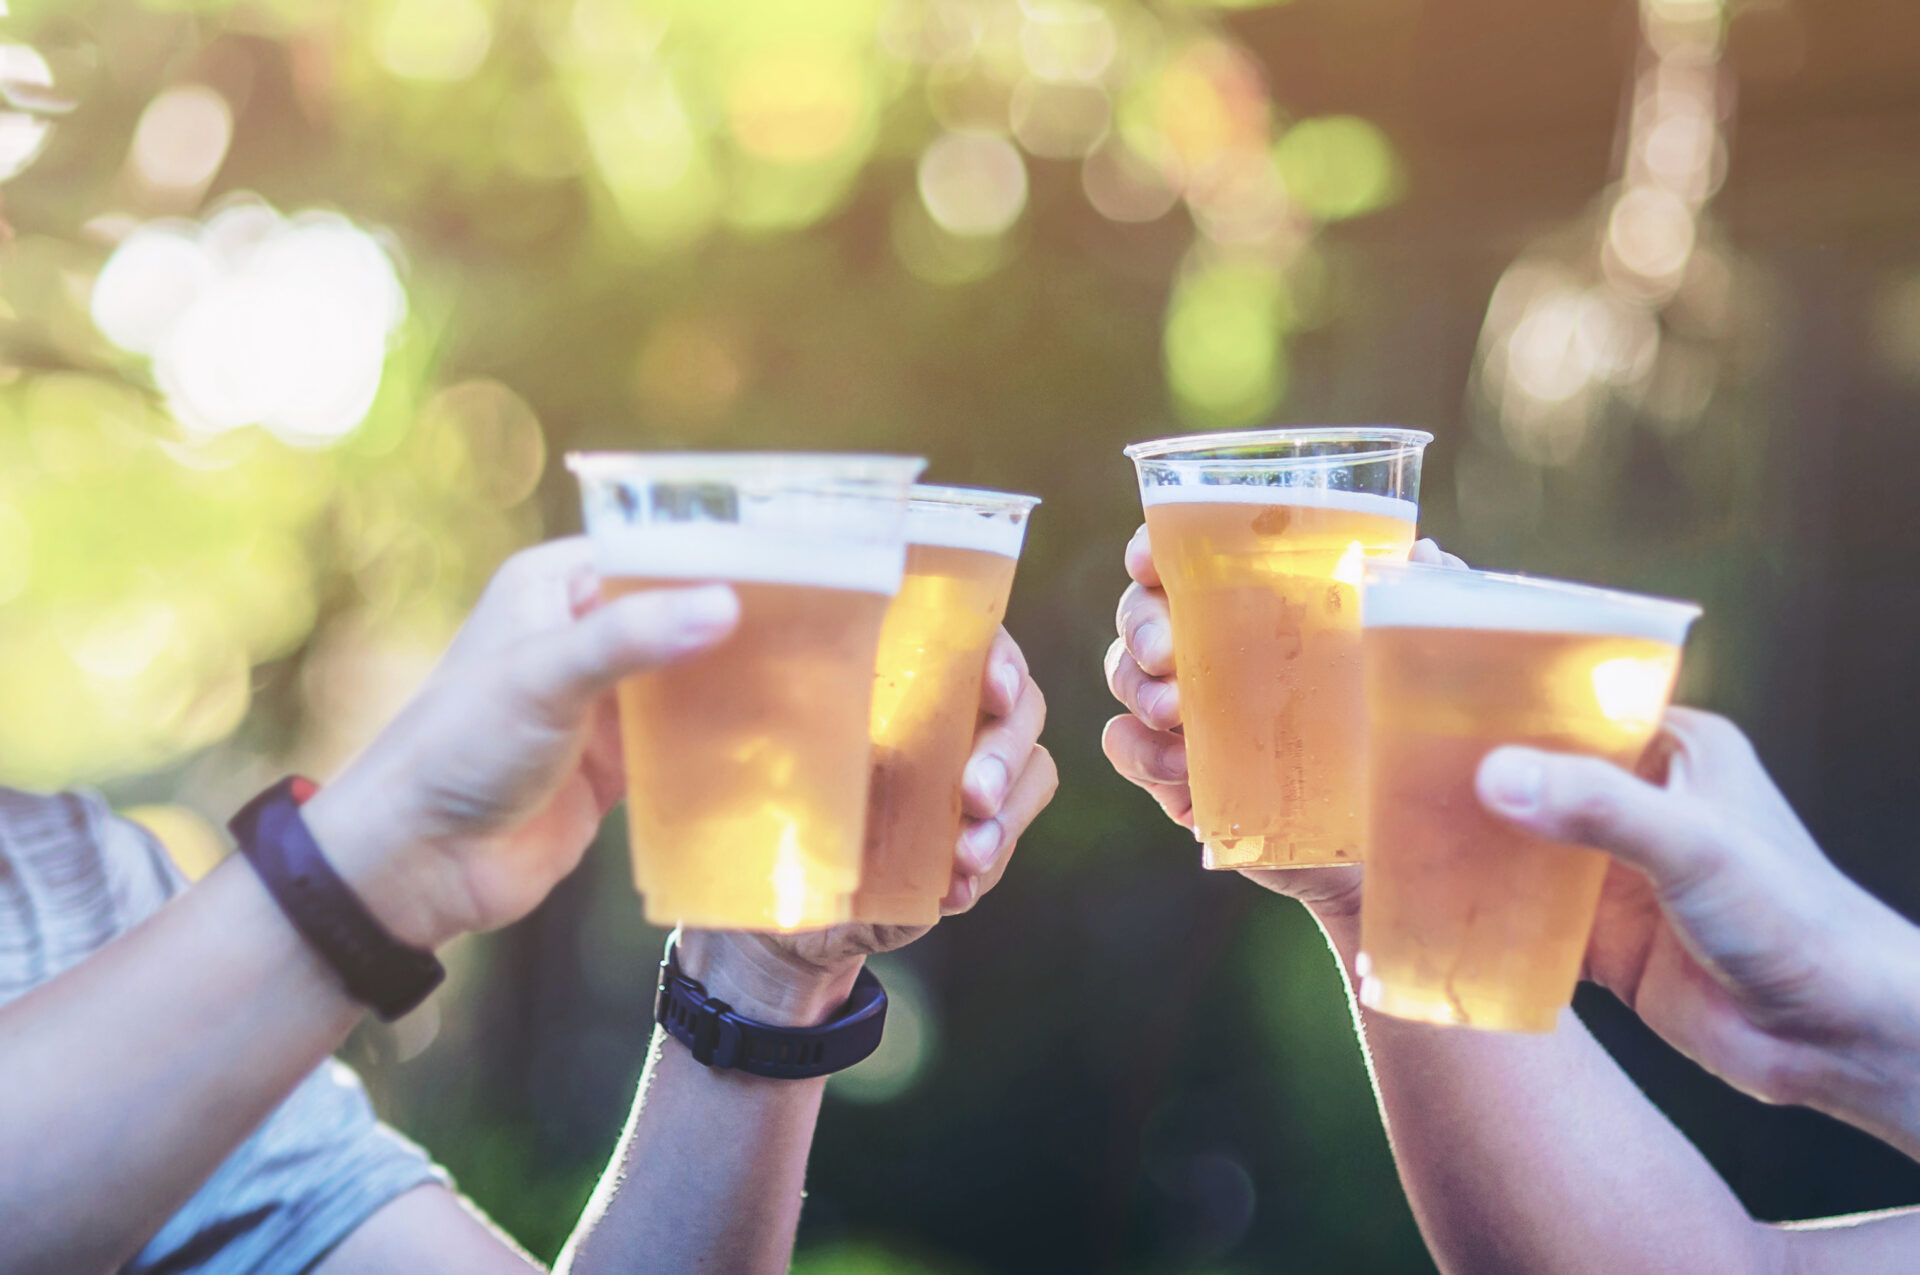 Celebration,Beer,Cheers,Concept,-,Close,Up,Hands,Holding,Up